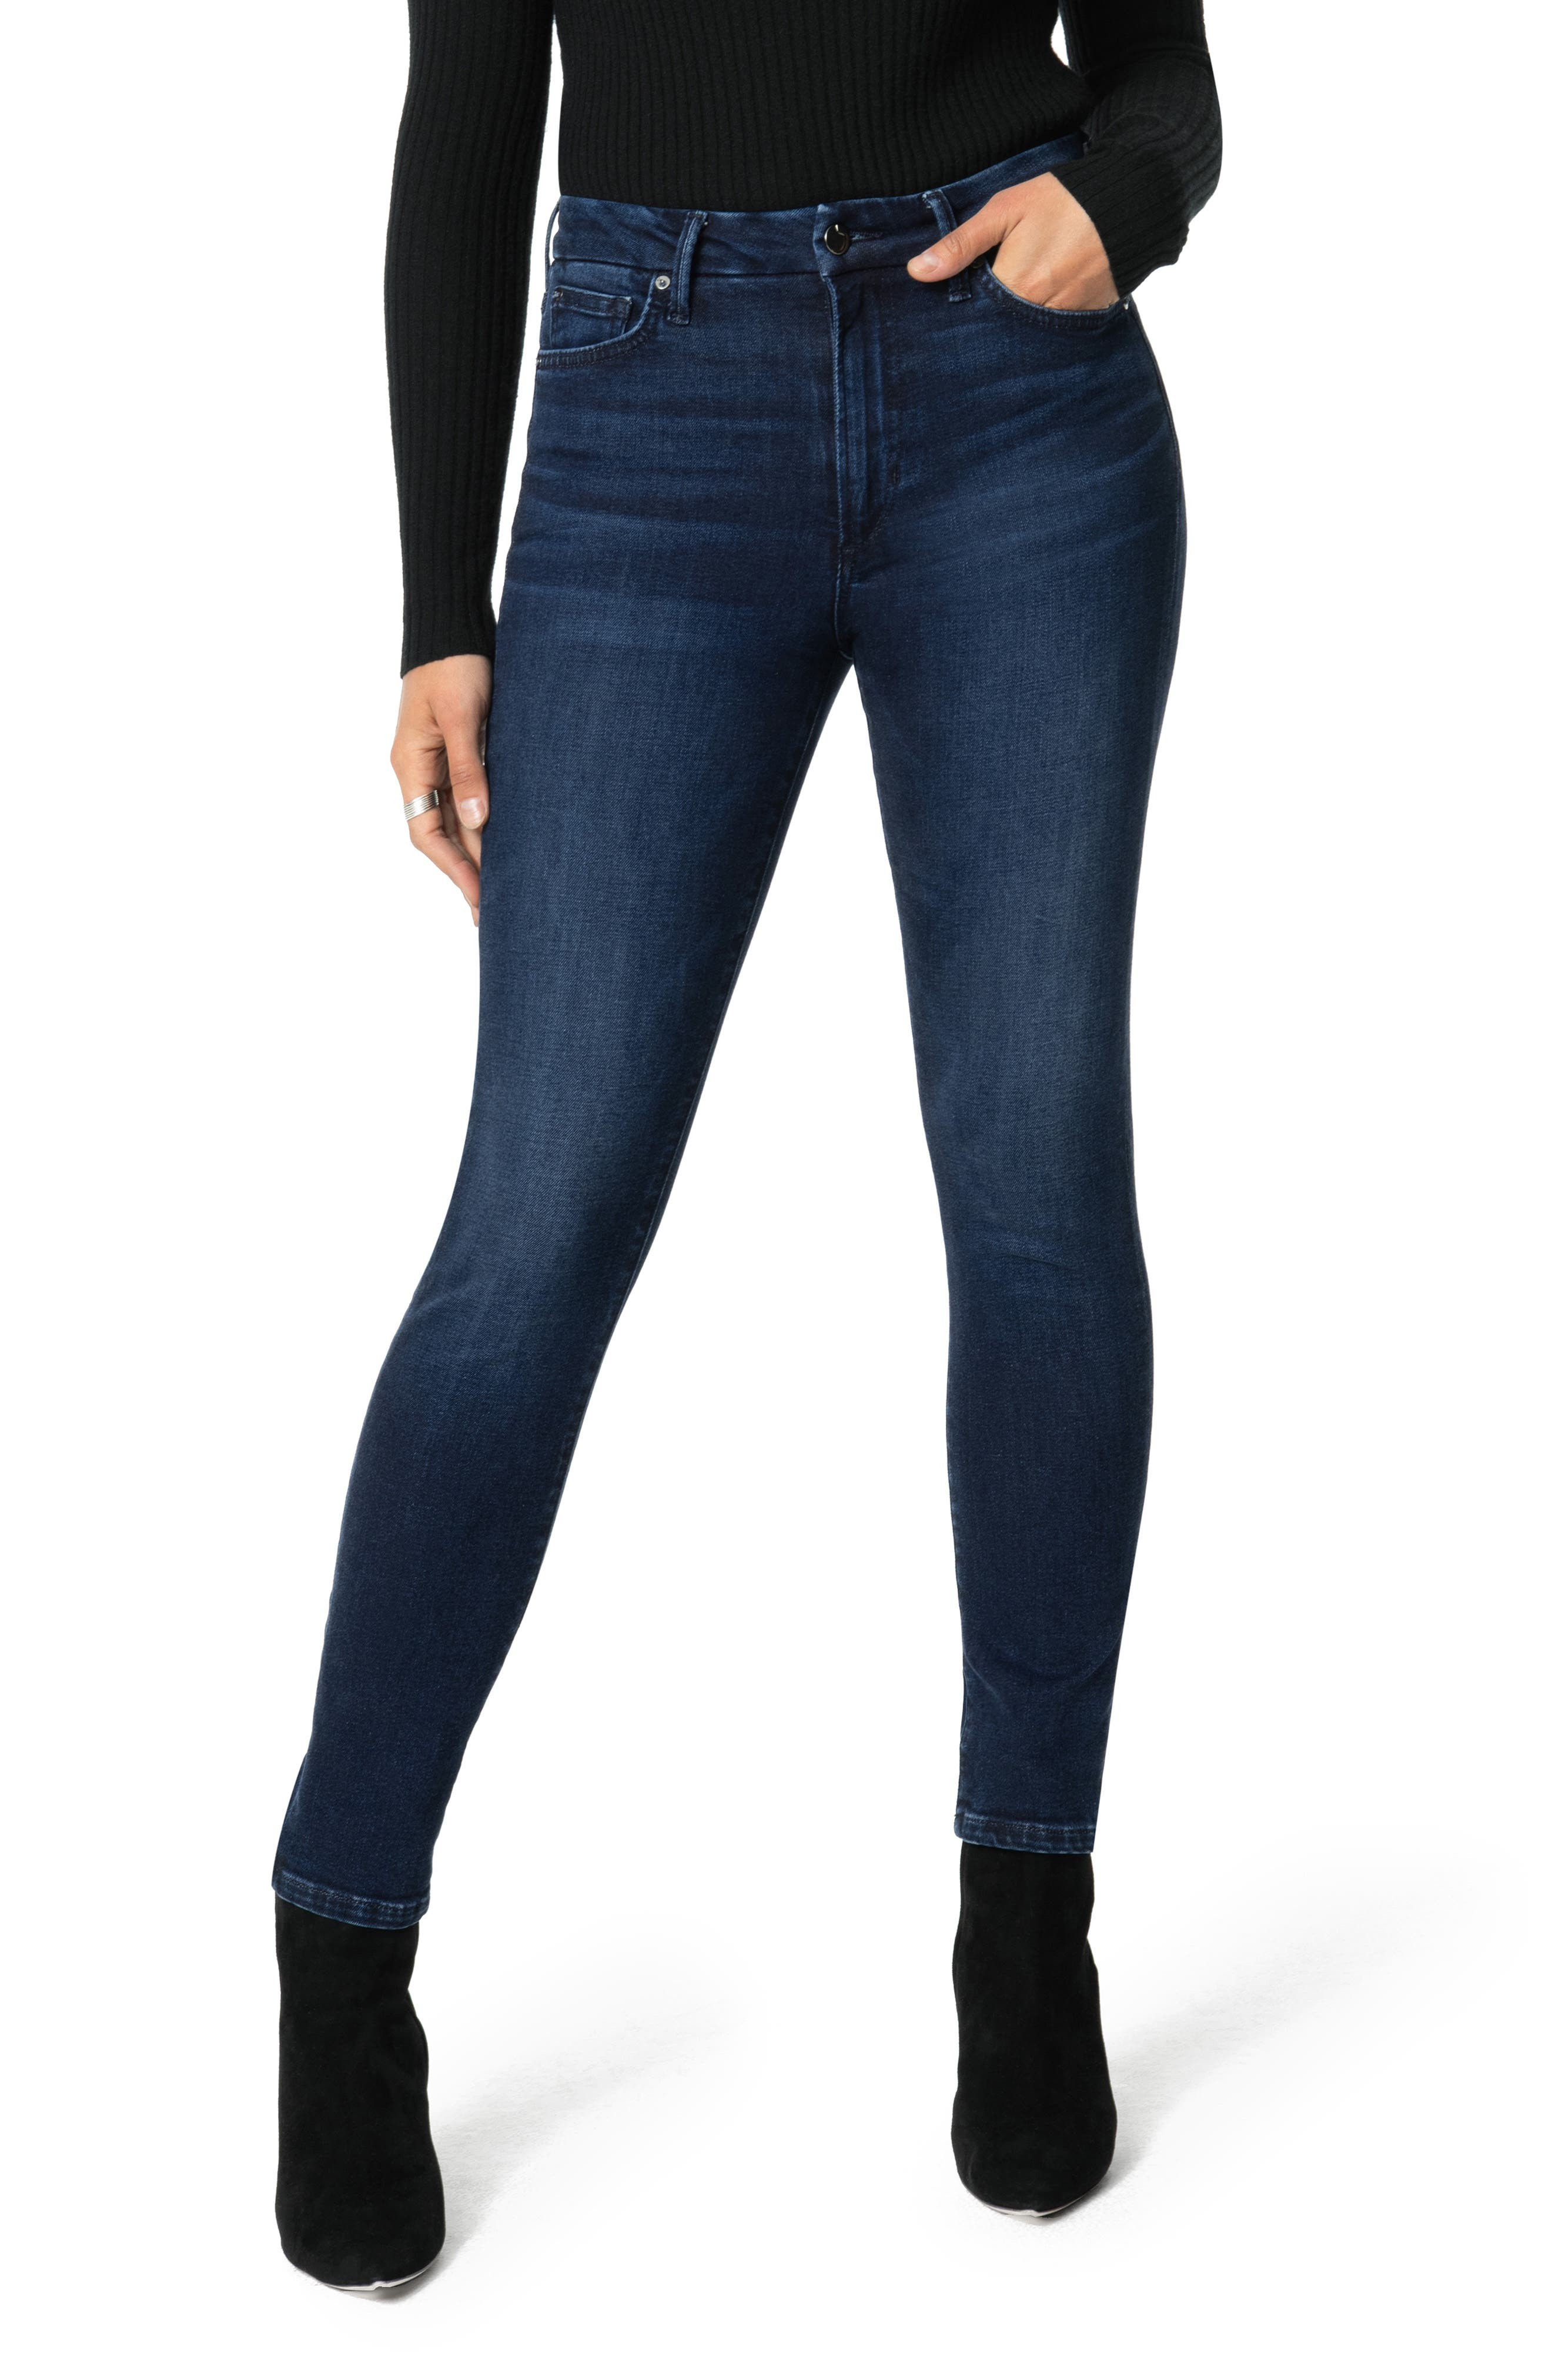 Joe's Jeans Flawless - The Charlie High Waist Ankle Skinny Jeans